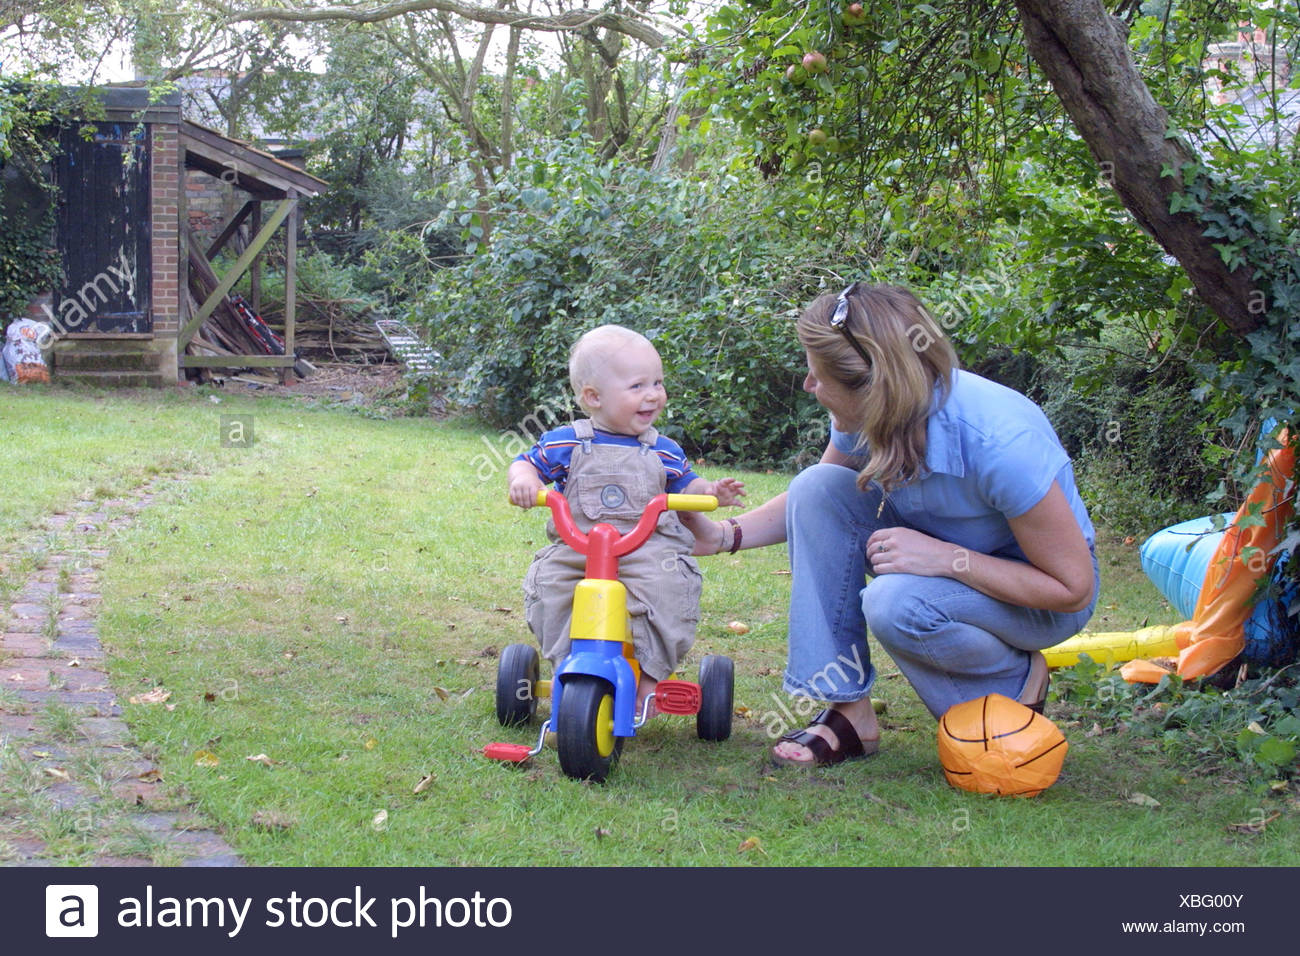 mother assisting her toddler on a tricycle - Stock Image